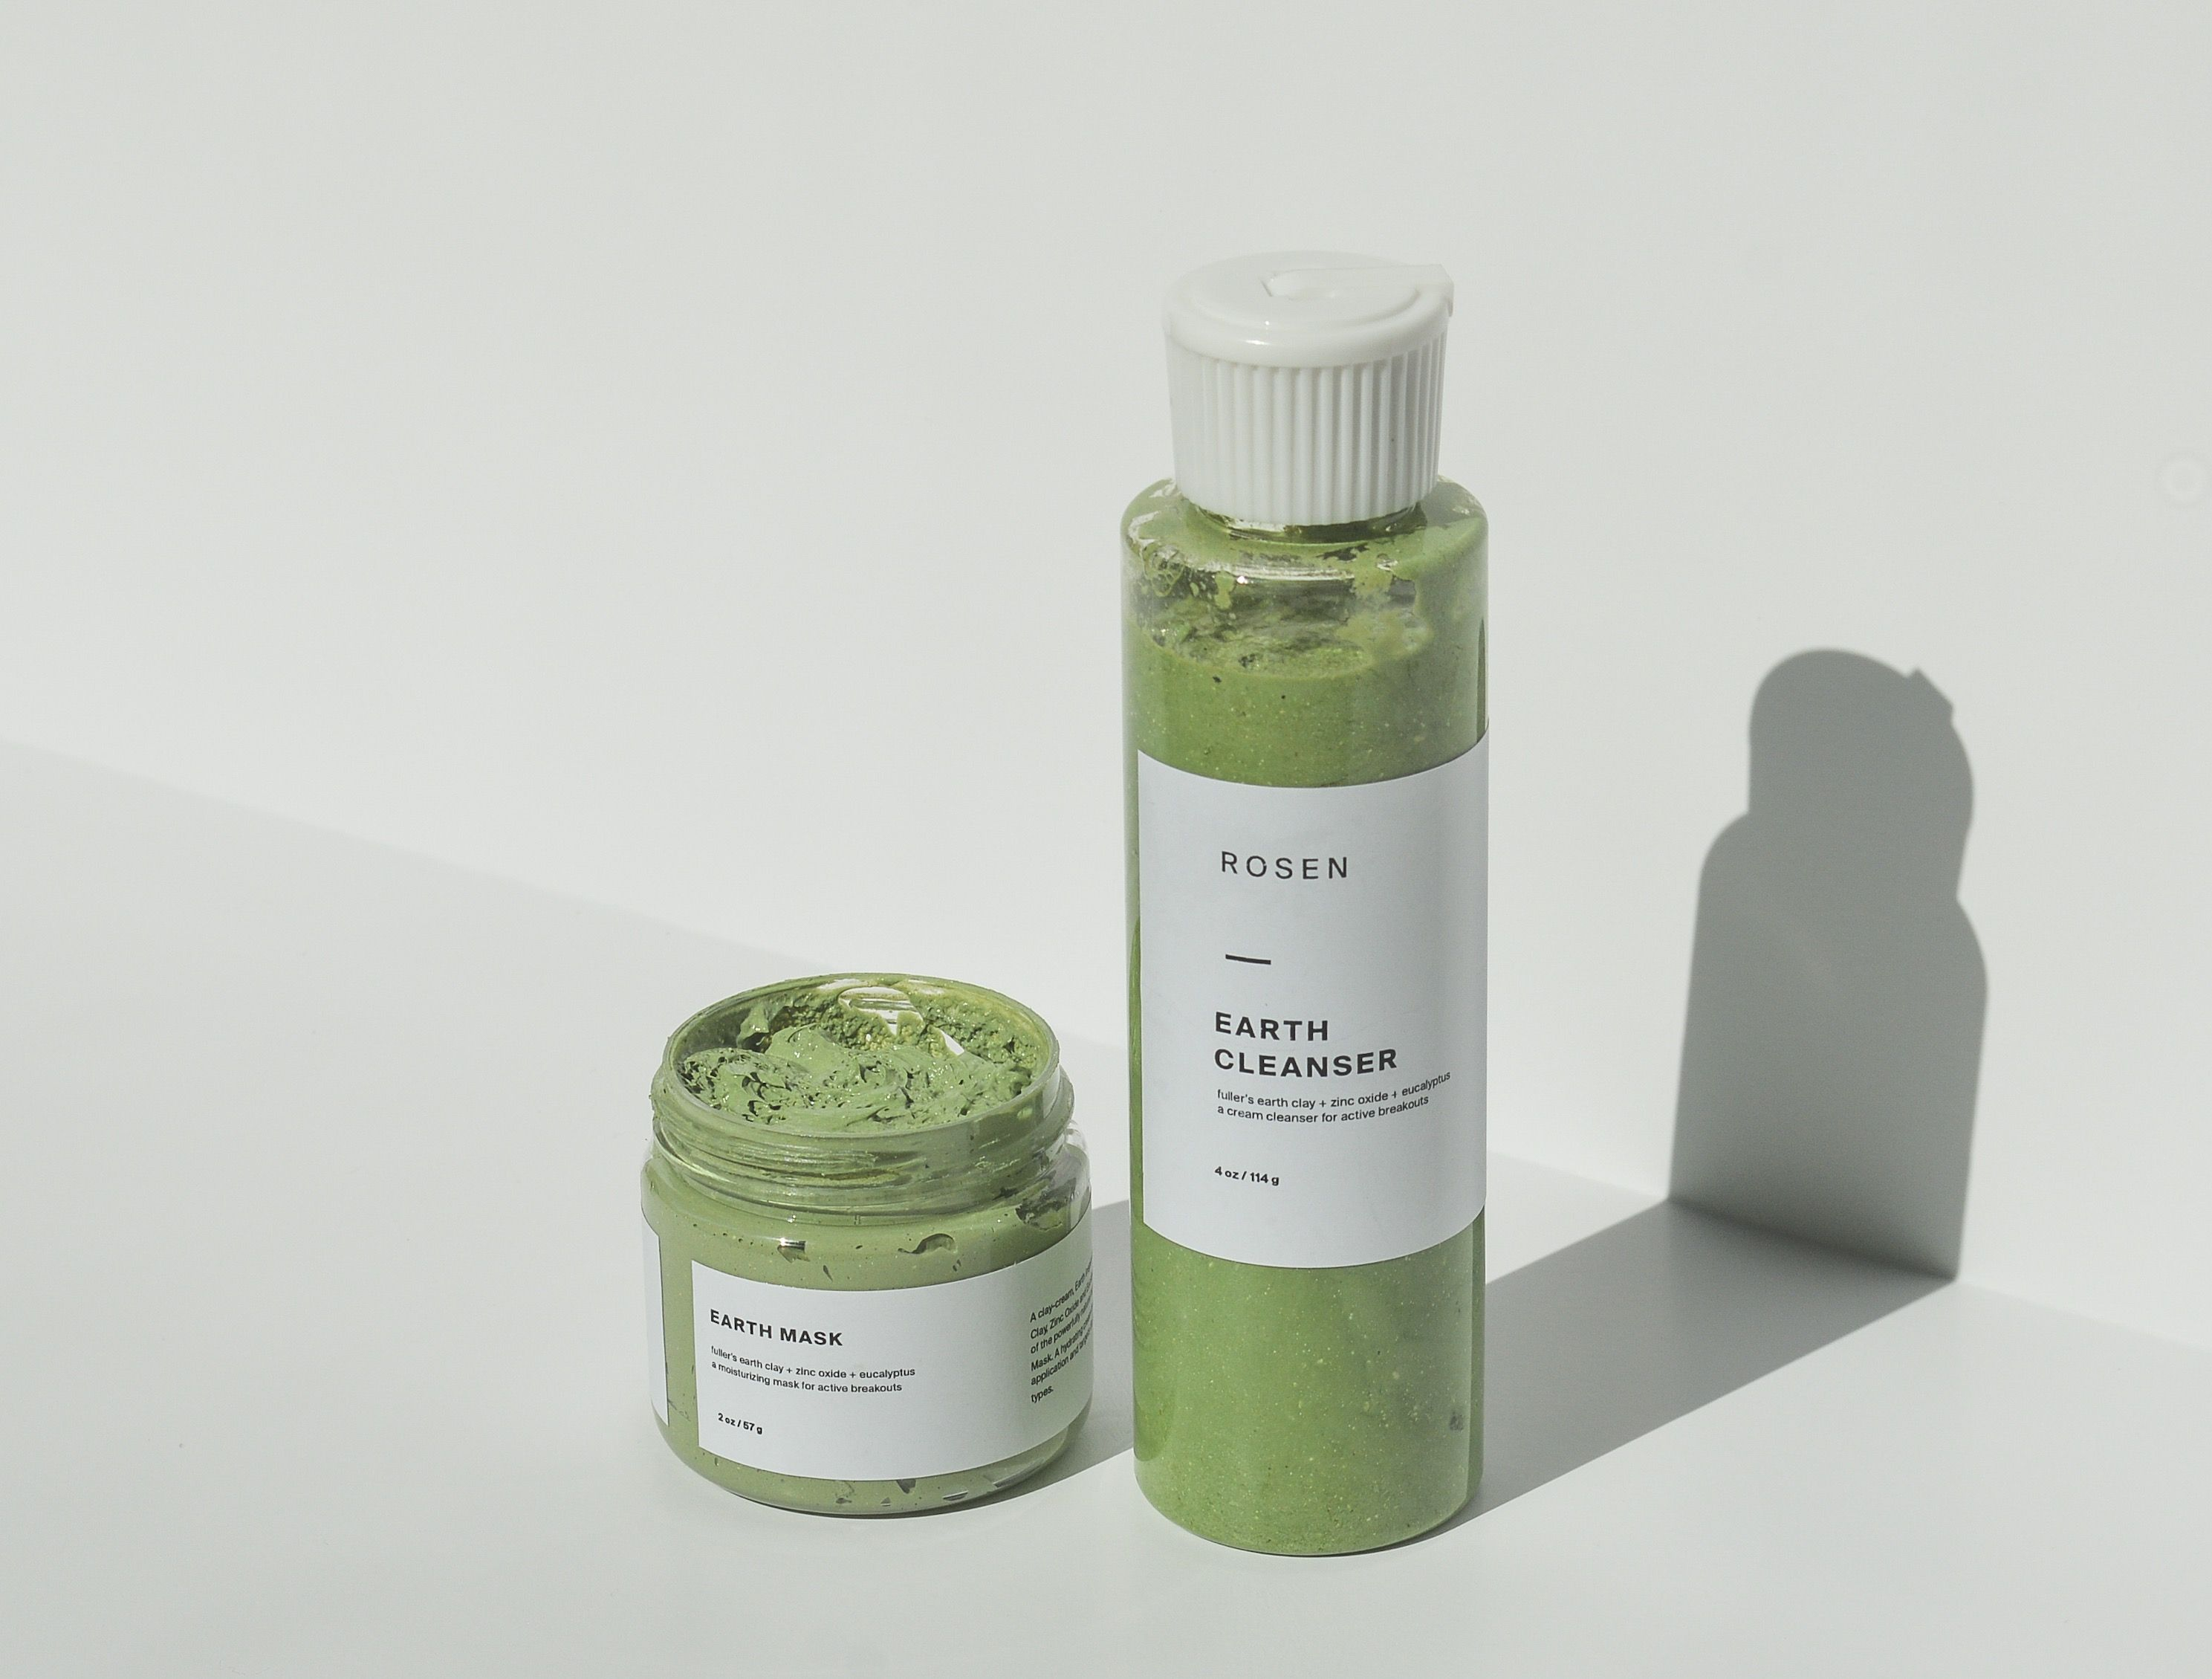 Earth Kit With Images Natural Skincare Brands Natural Skin